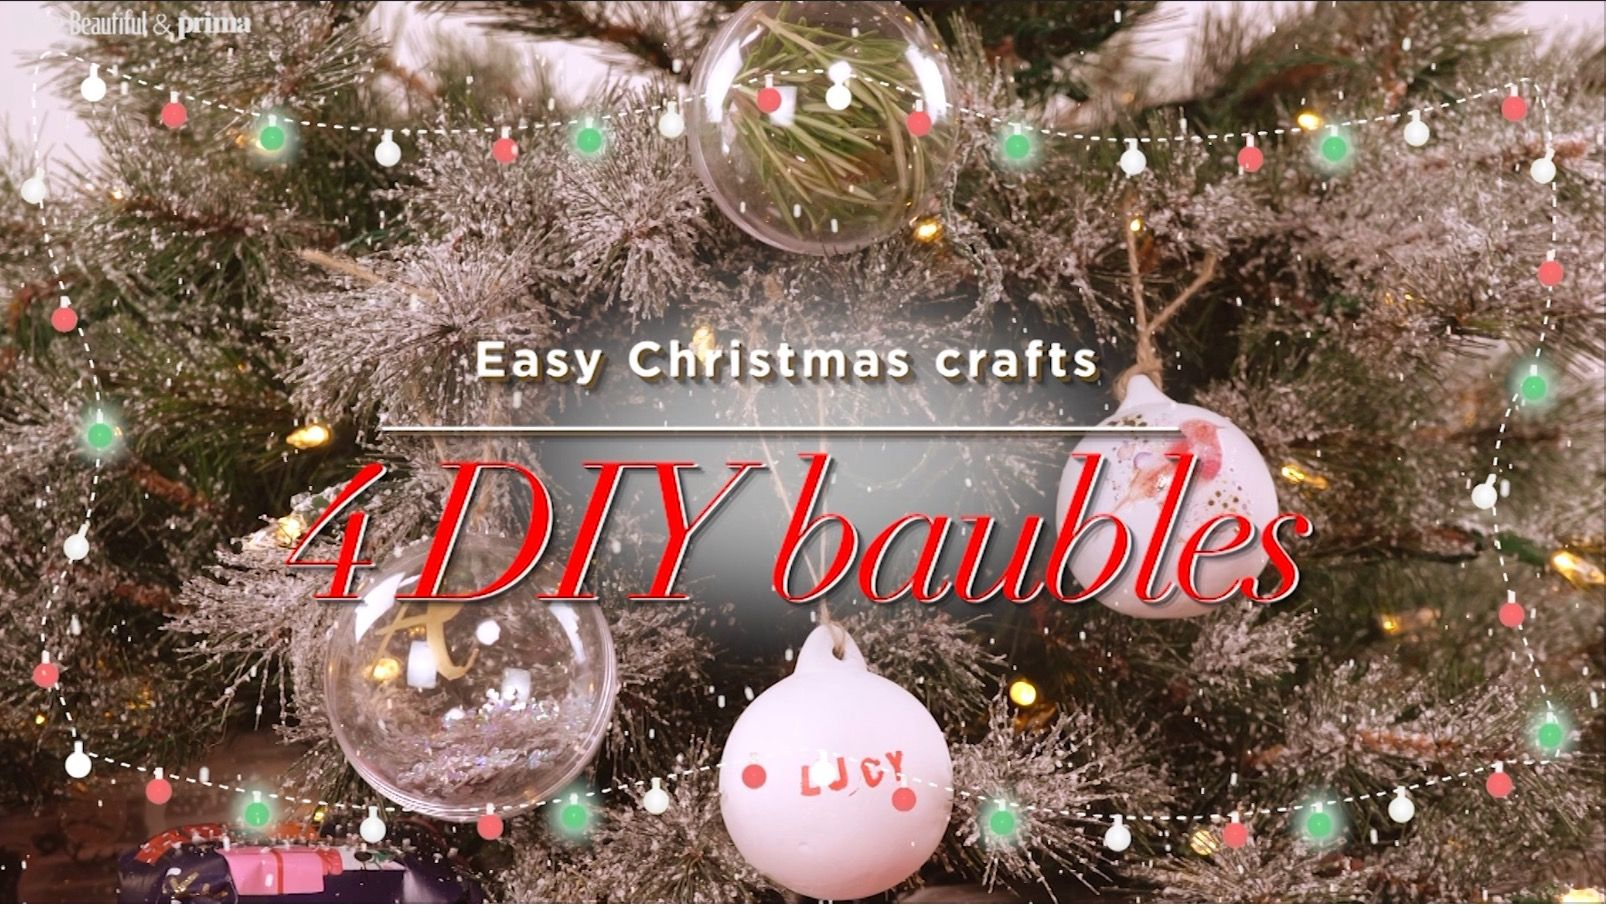 4 Easy Ways To Make Your Own Christmas Baubles - Personalised Christmas Baubles